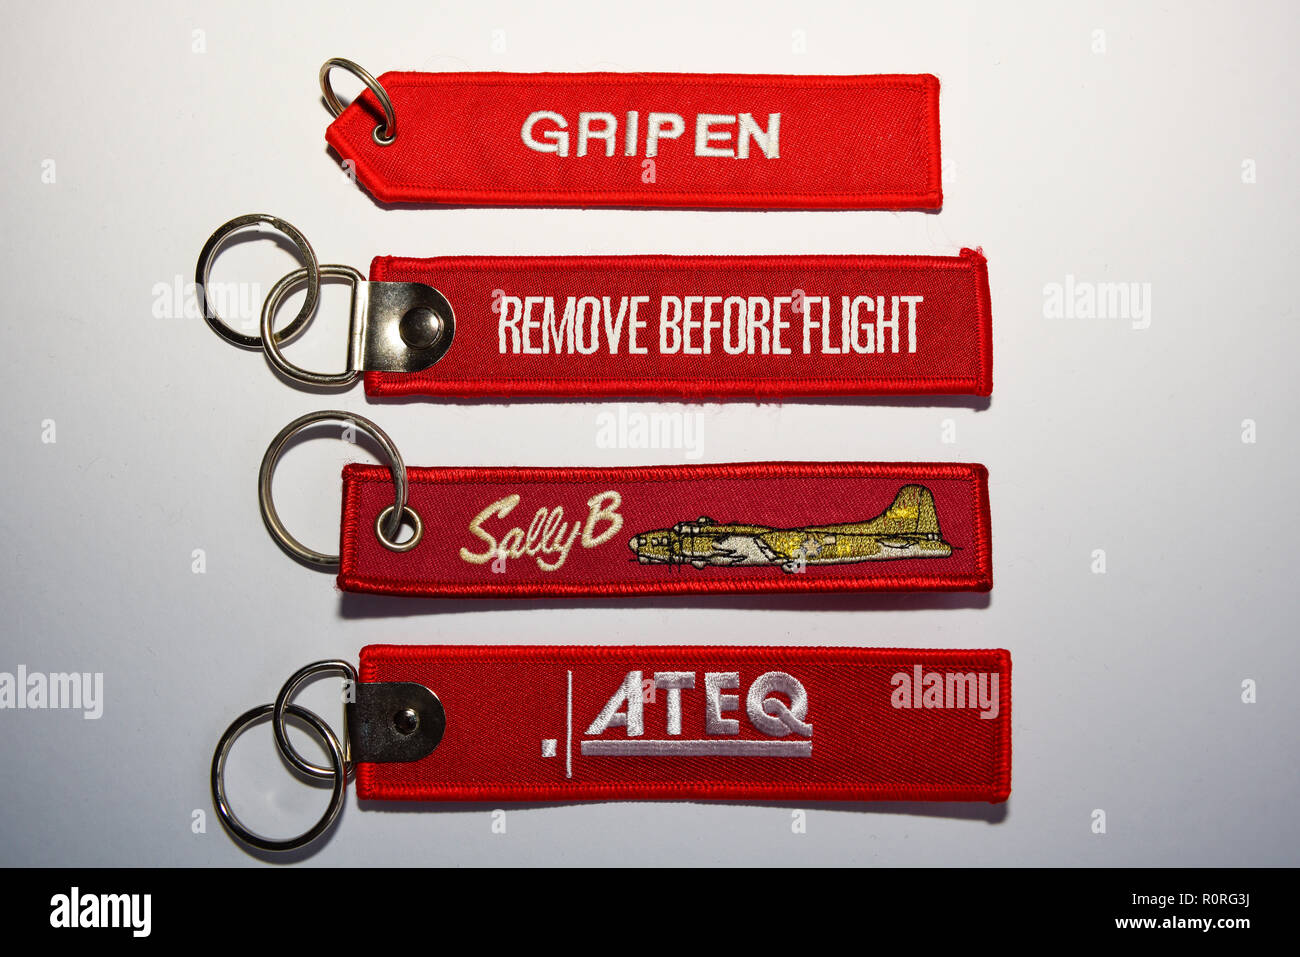 Remove before flight promotional tags, embroidered key rings